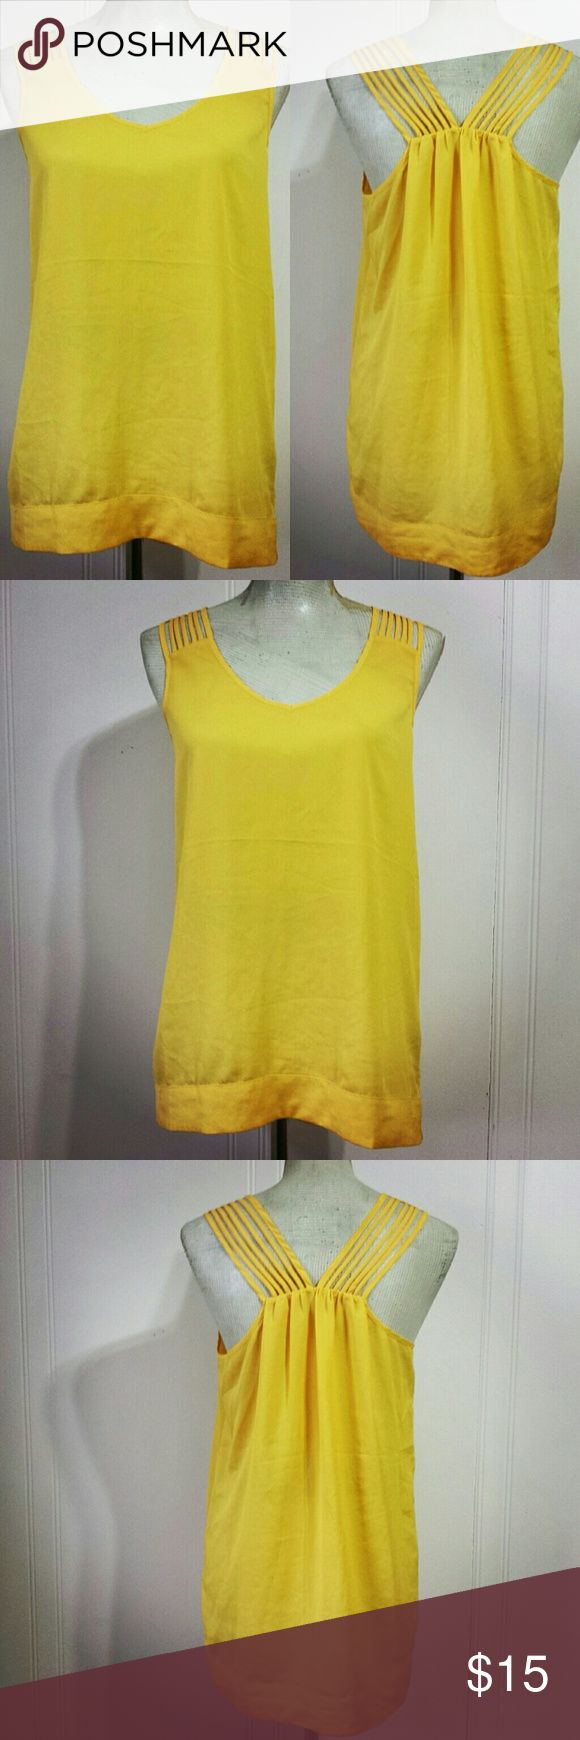 Naked Zebra Yellow Lightweight Tank Top There is no reason you can't have fun and be comfy at the same time. This funky yellow tank top can help you get there. This shirt is made from a lightweight flowy polyester. This naked Zebra tank top is in excellent condition. Naked Zebra Tops Tank Tops